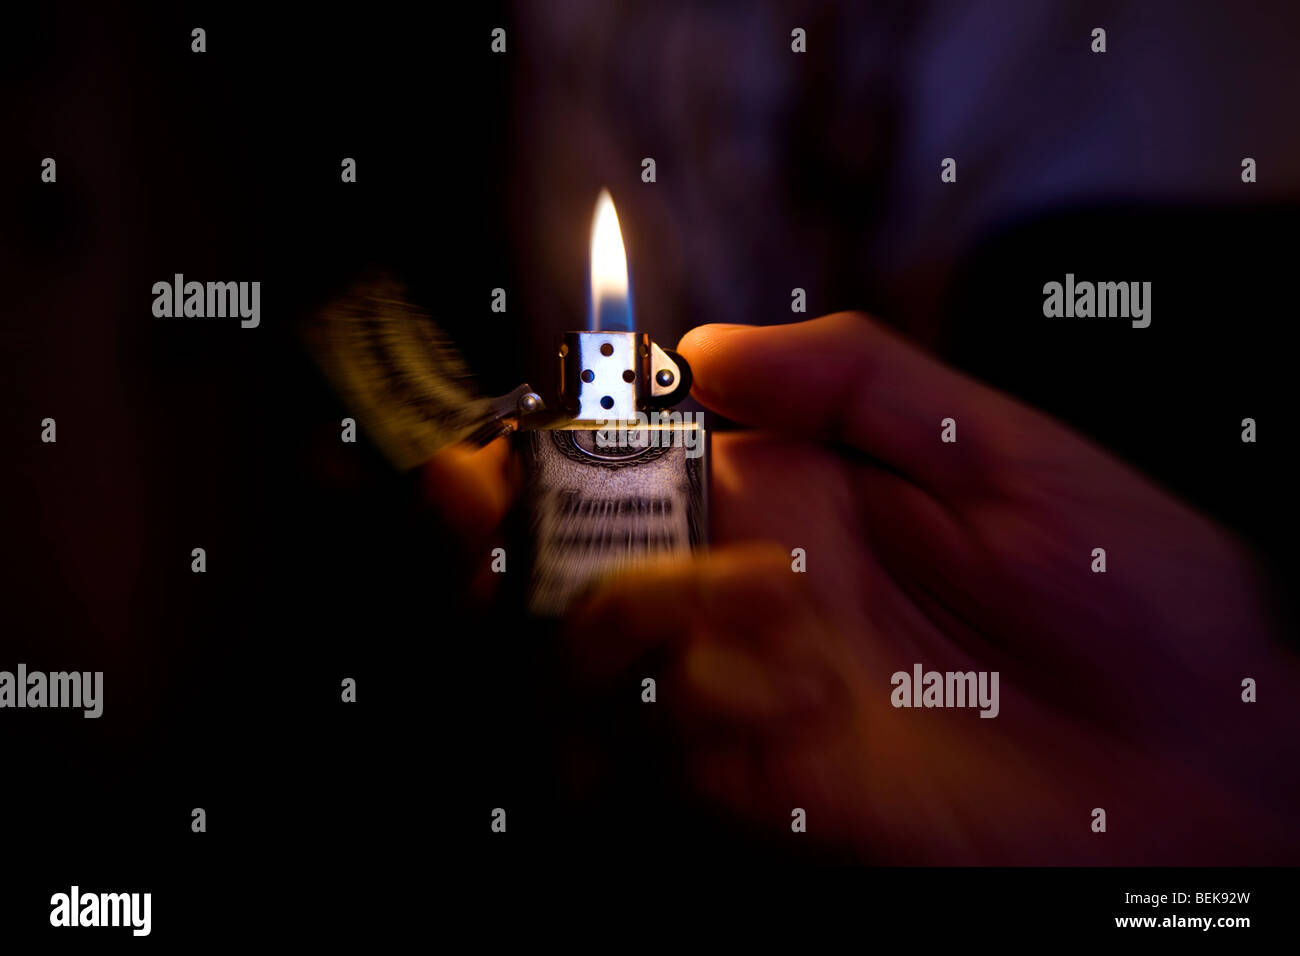 a man holding a zippo lighter in the dark - Stock Image